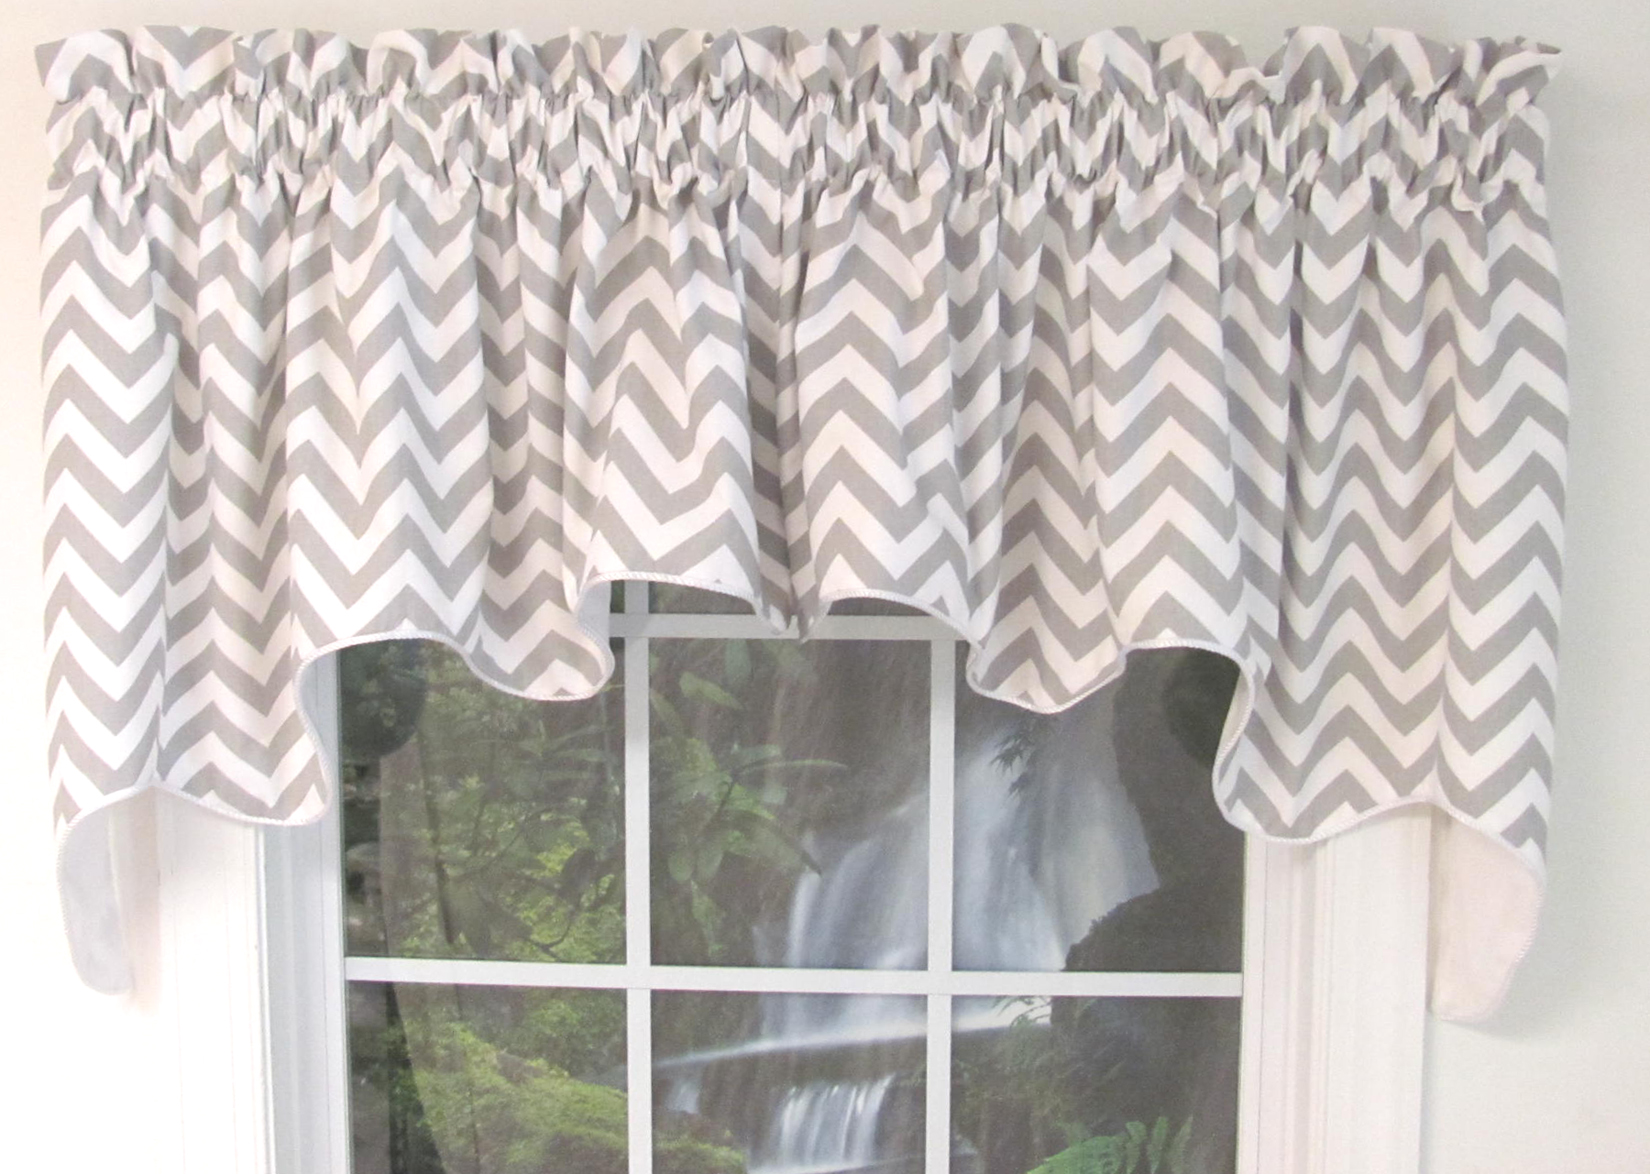 ideas conduit nonsensical curtains double splendid diy pipe and galvanized simple curtain concept rod industrial rods newfangled house